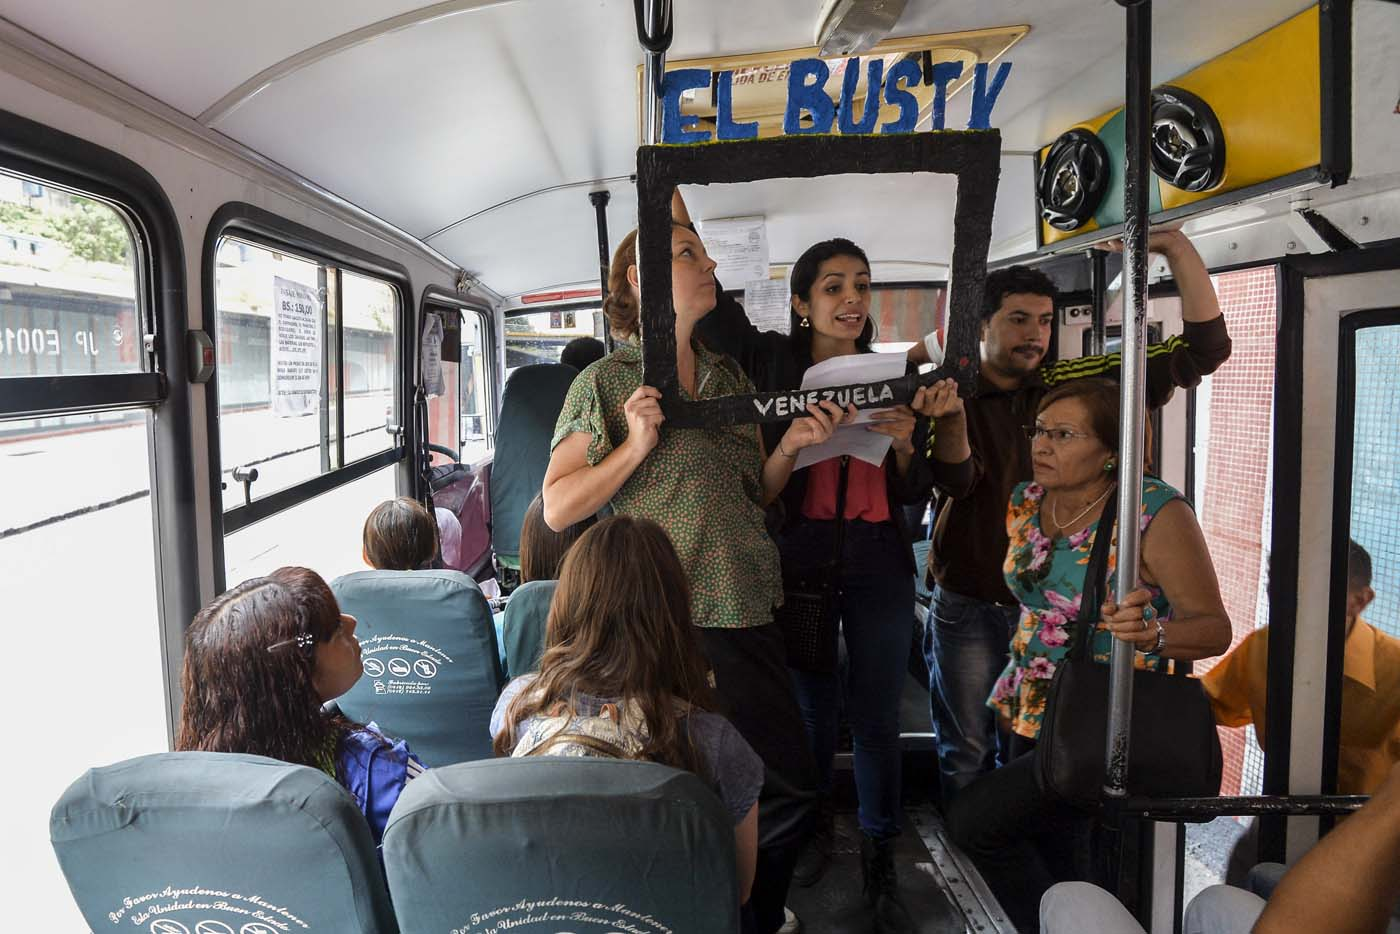 Laura Castillo (L), Maria Gabriela Fernandez (C) and Dereck Blanco (R) give a presentation of the Bus TV news in Caracas, Venezuela, on June 6, 2017. A group of young Venezuelan reporters board buses to present the news, as part of a project to keep people informed in the face of what the opposition and the national journalists' union describe as censorship by the government of Nicolas Maduro. / AFP PHOTO / LUIS ROBAYO